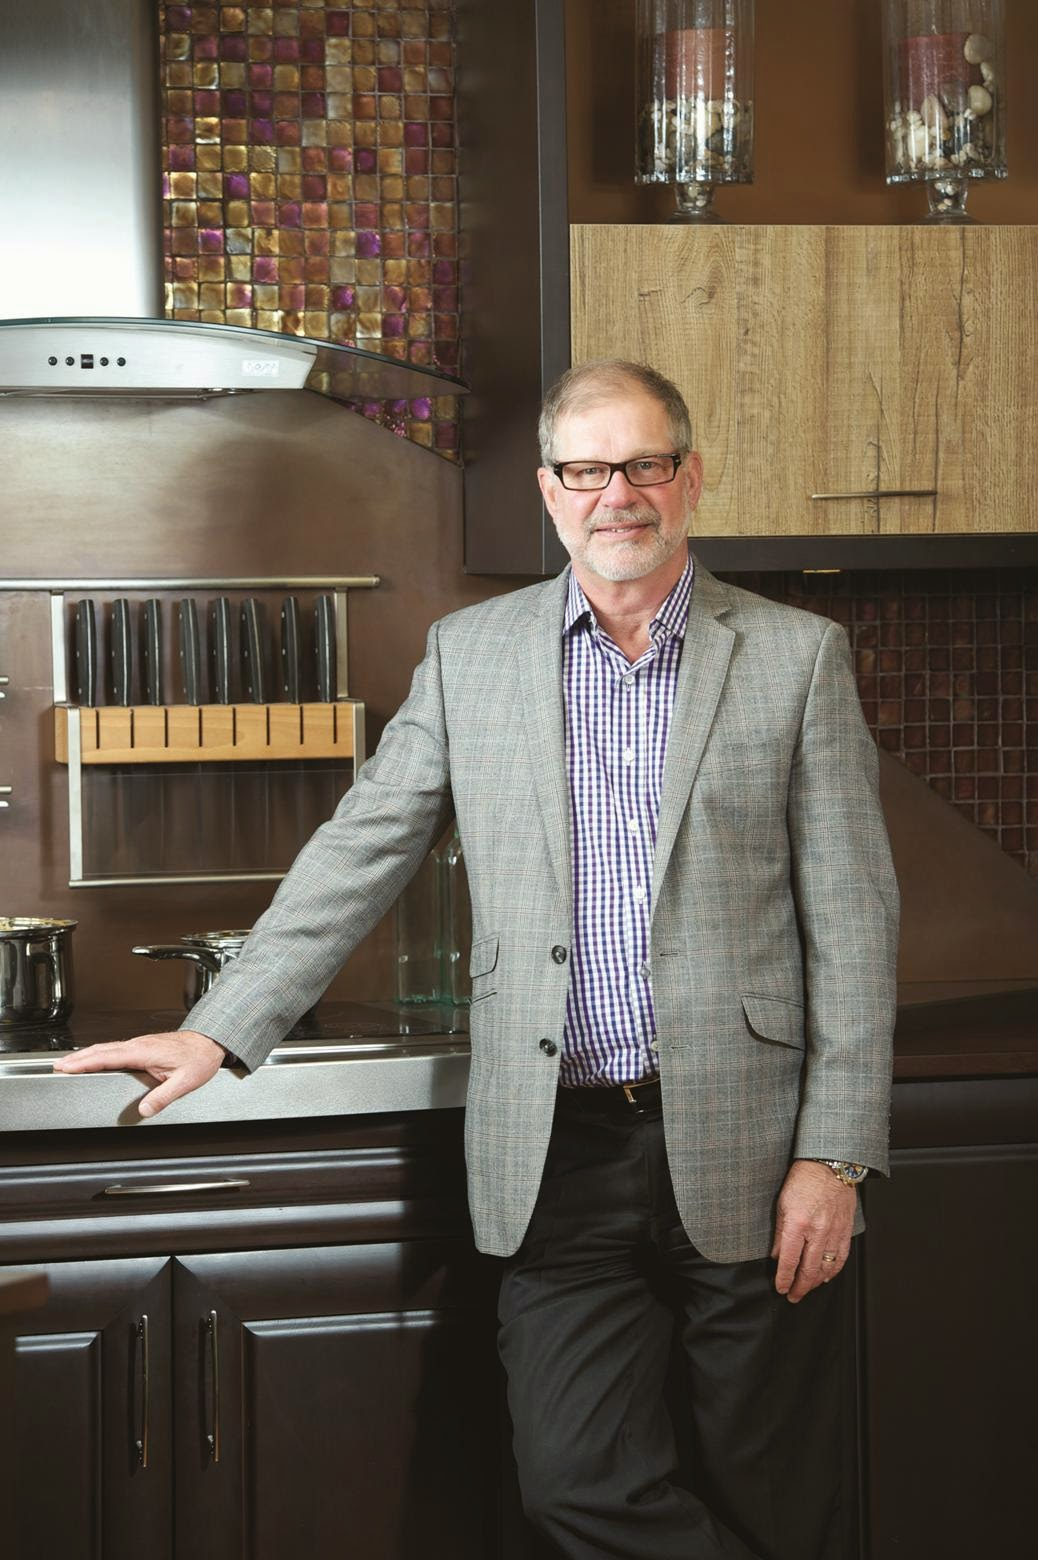 Steve Bell Of Bellmont Cabinet Co. Named 2014 Washington Manufacturing  Executive Of The Year